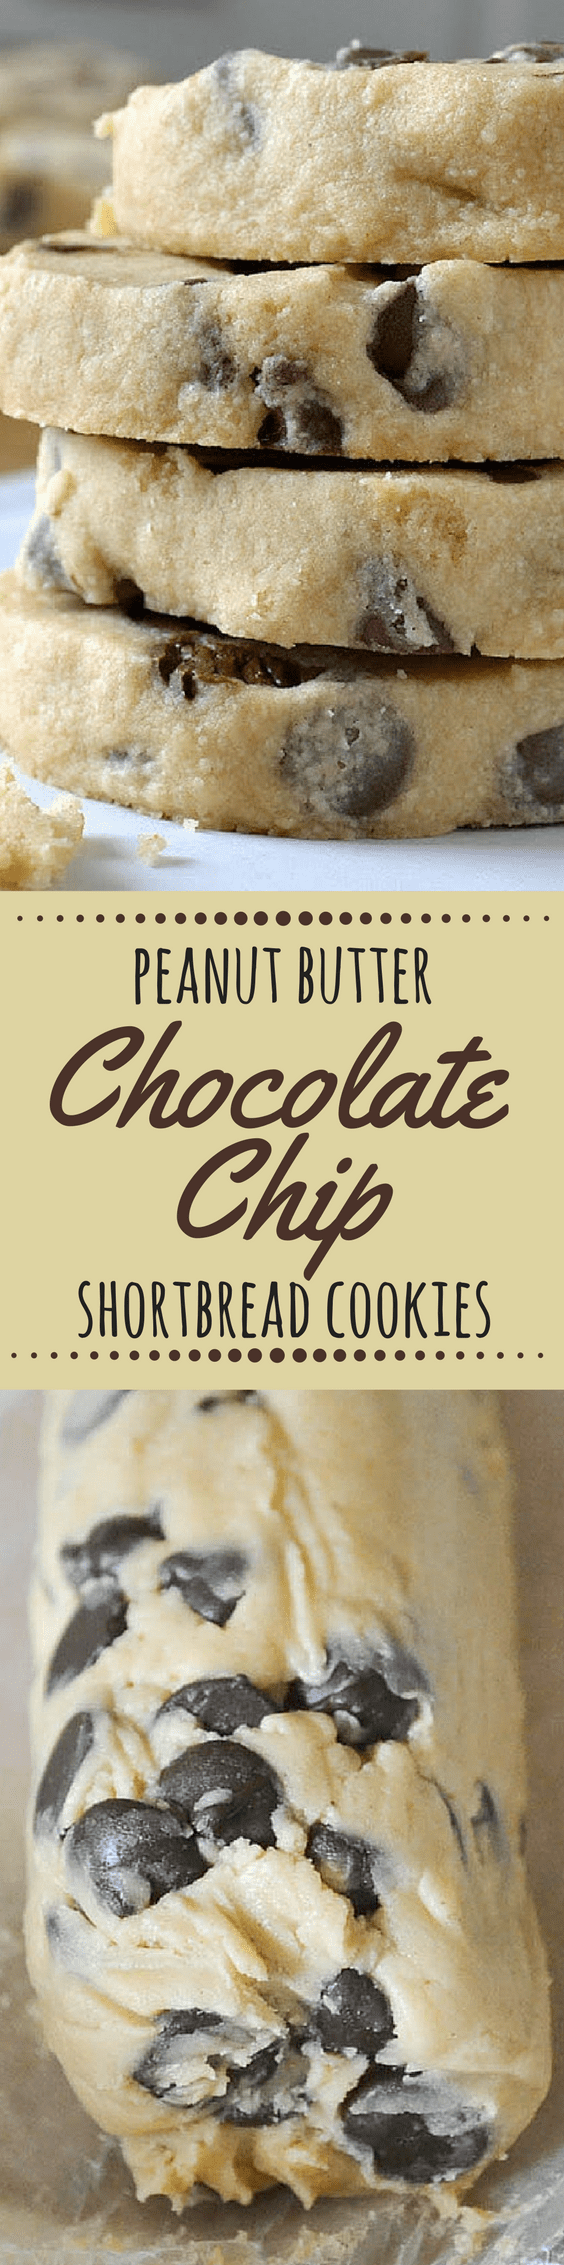 Peanut Butter Chocolate Chip Shortbread Cookies ~ theviewfromgreatisland.com